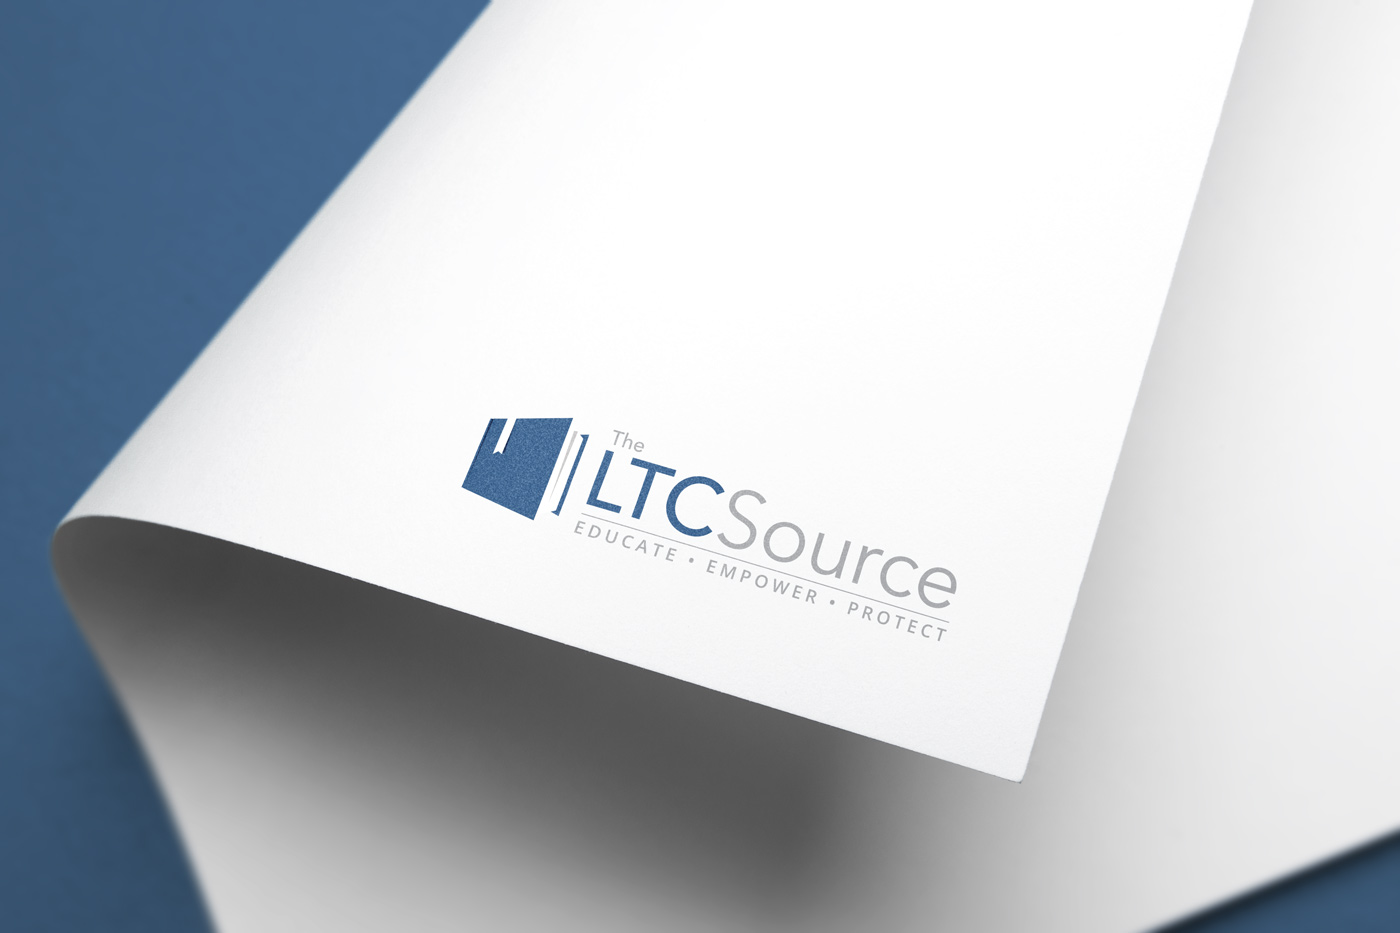 Genworth LTC Source Logo Design